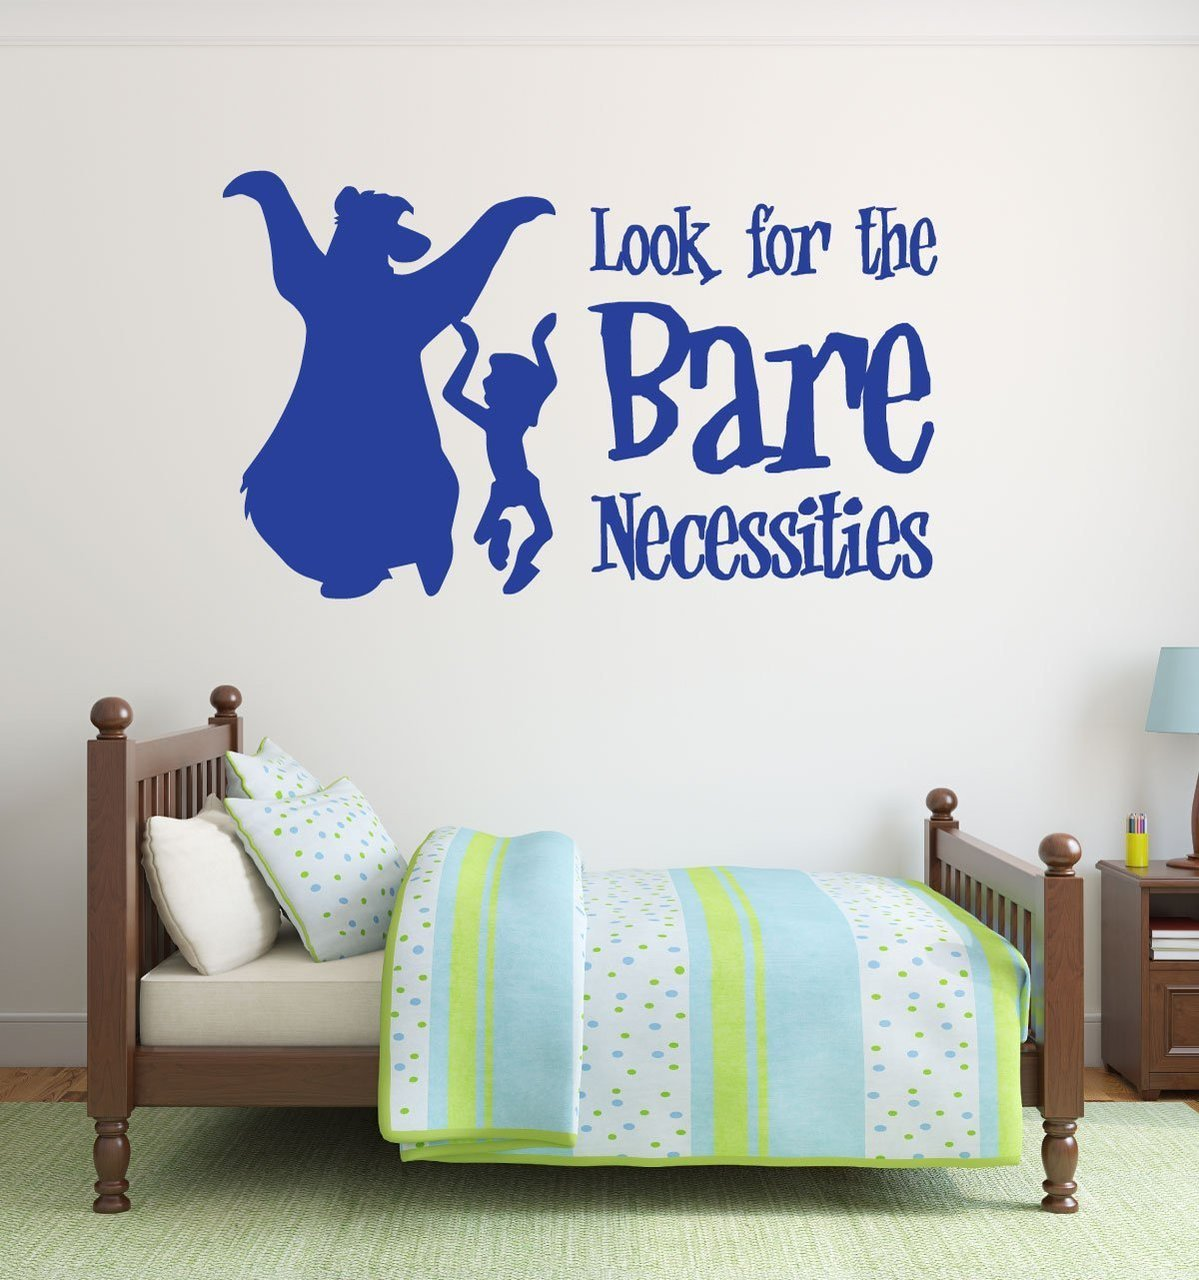 Disney Wall Decals - Baloo and Mowgli - The Bare Necessities